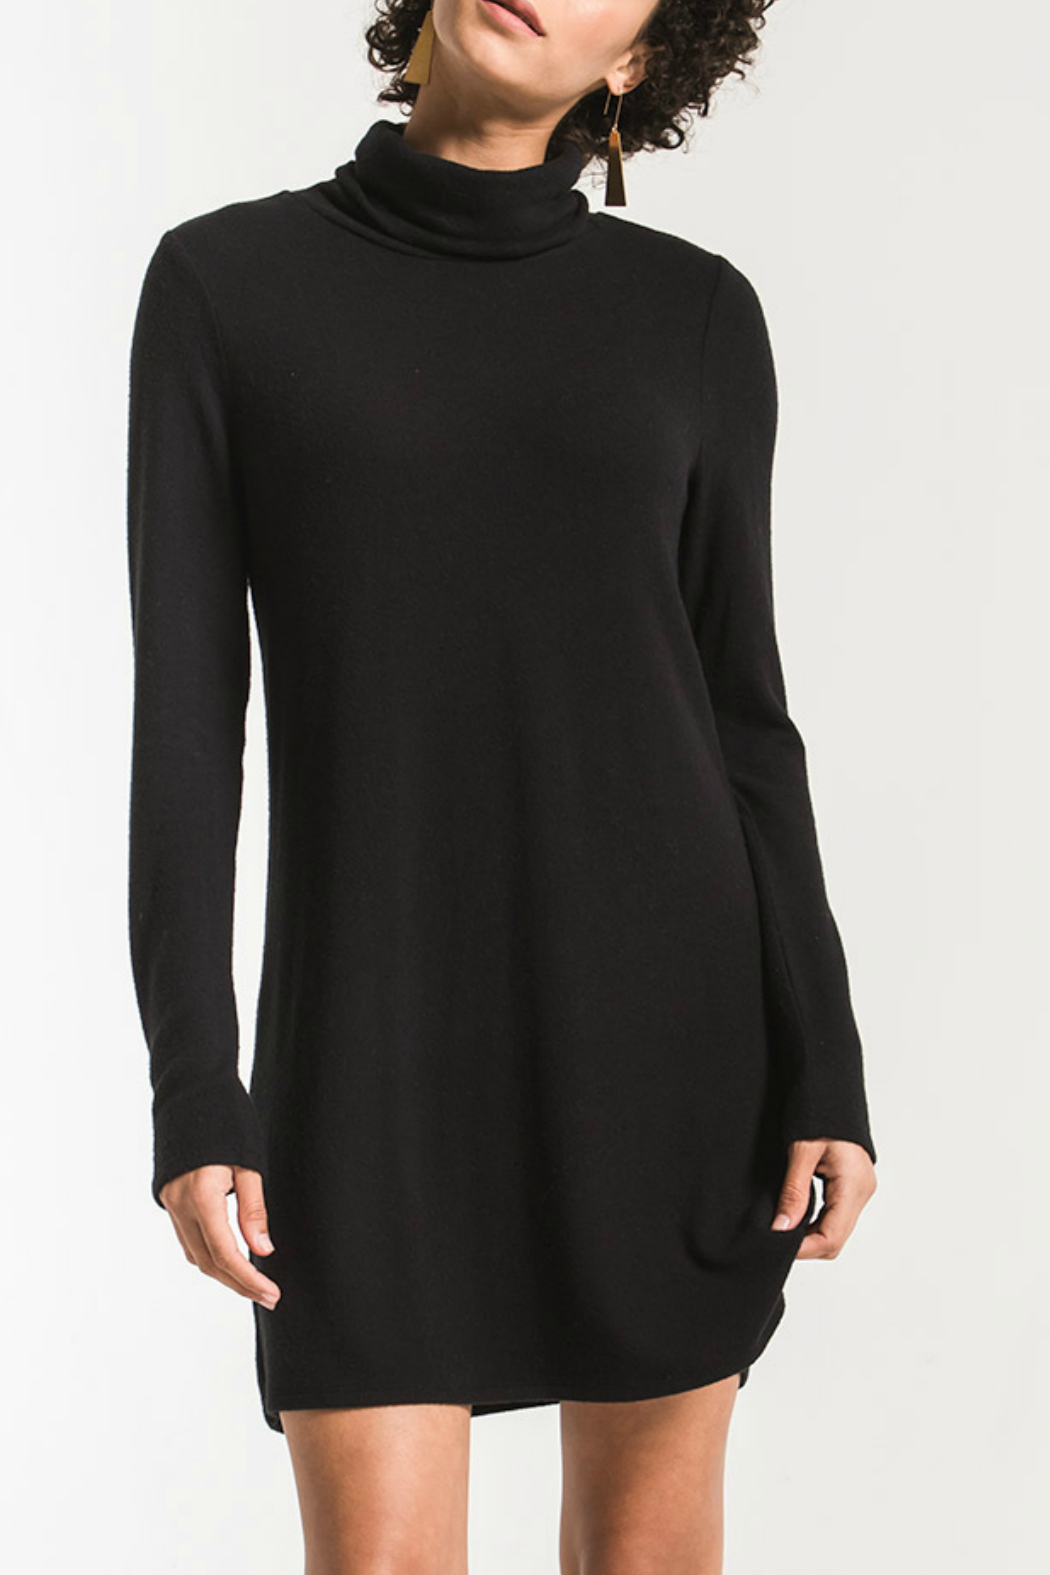 z supply Turtleneck Sweater Dress - Front Cropped Image